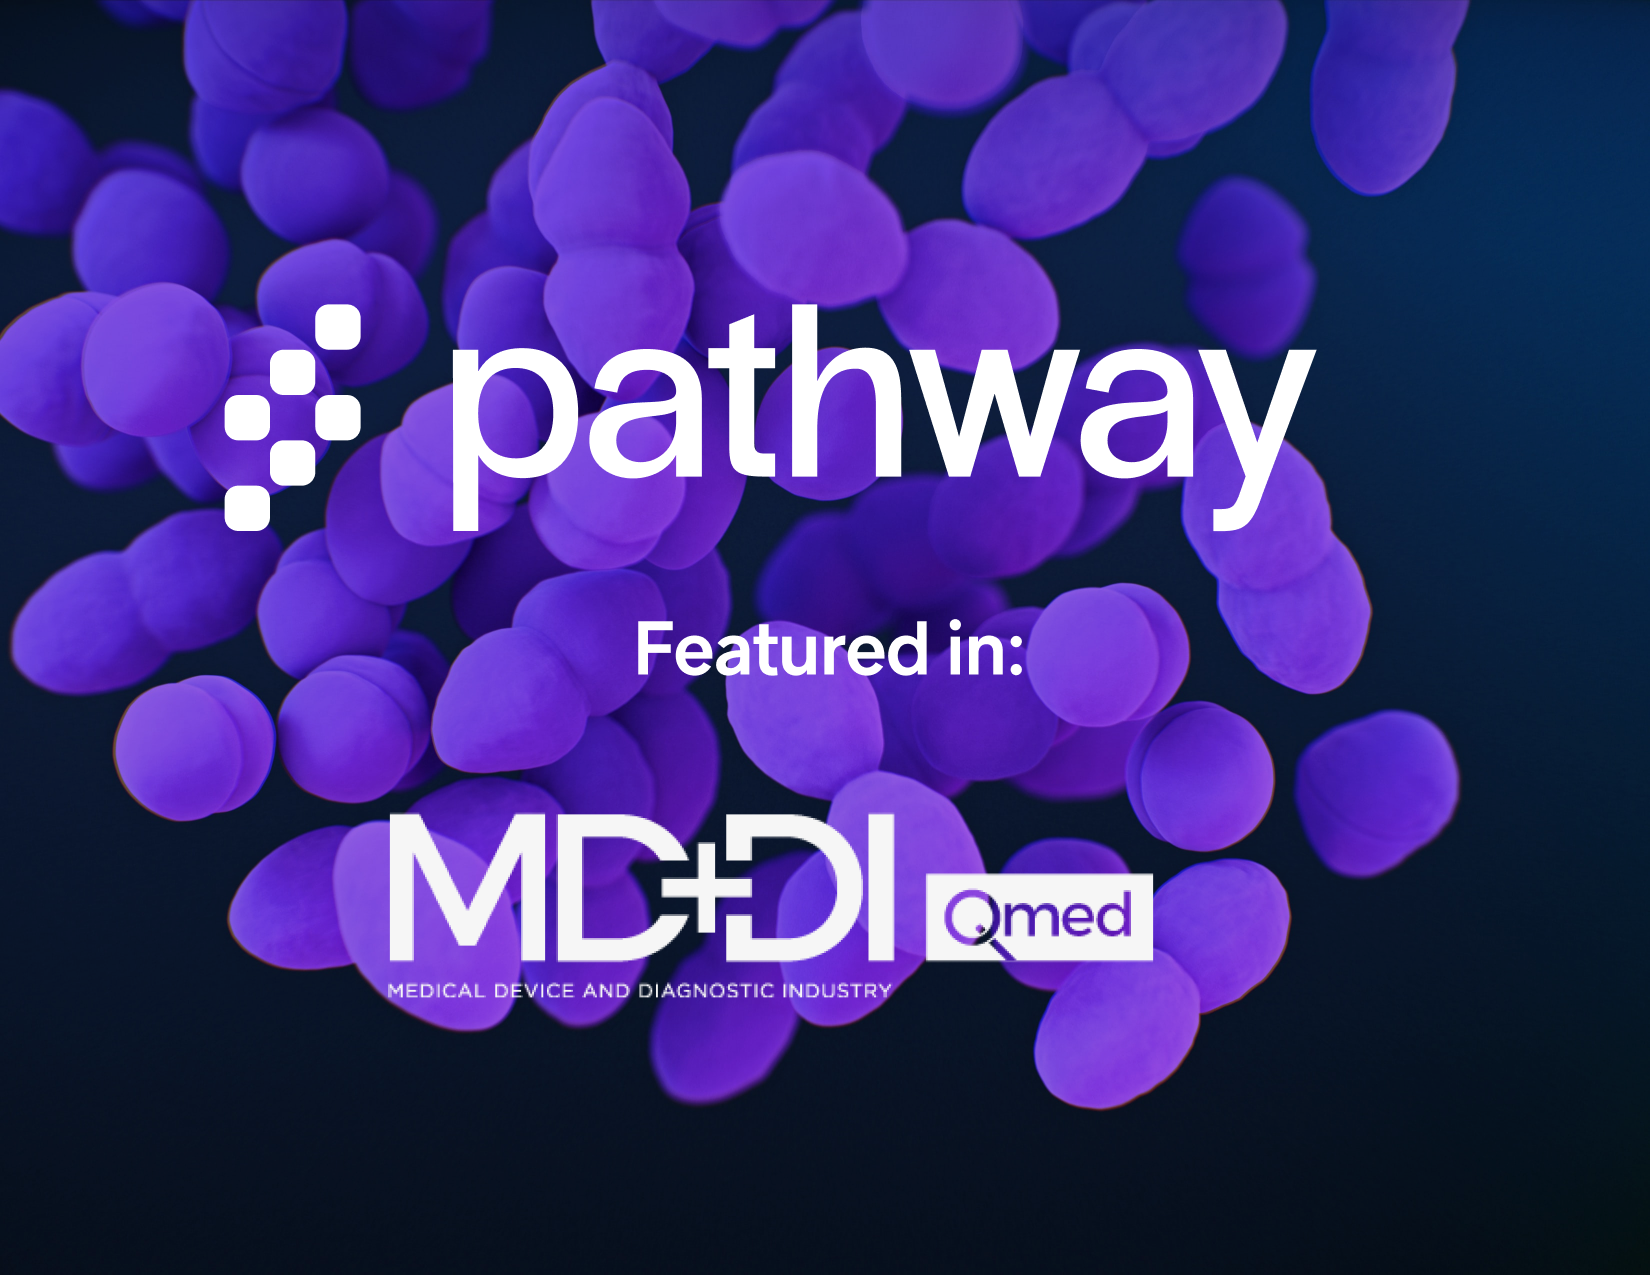 Pathway featured in MD+DI